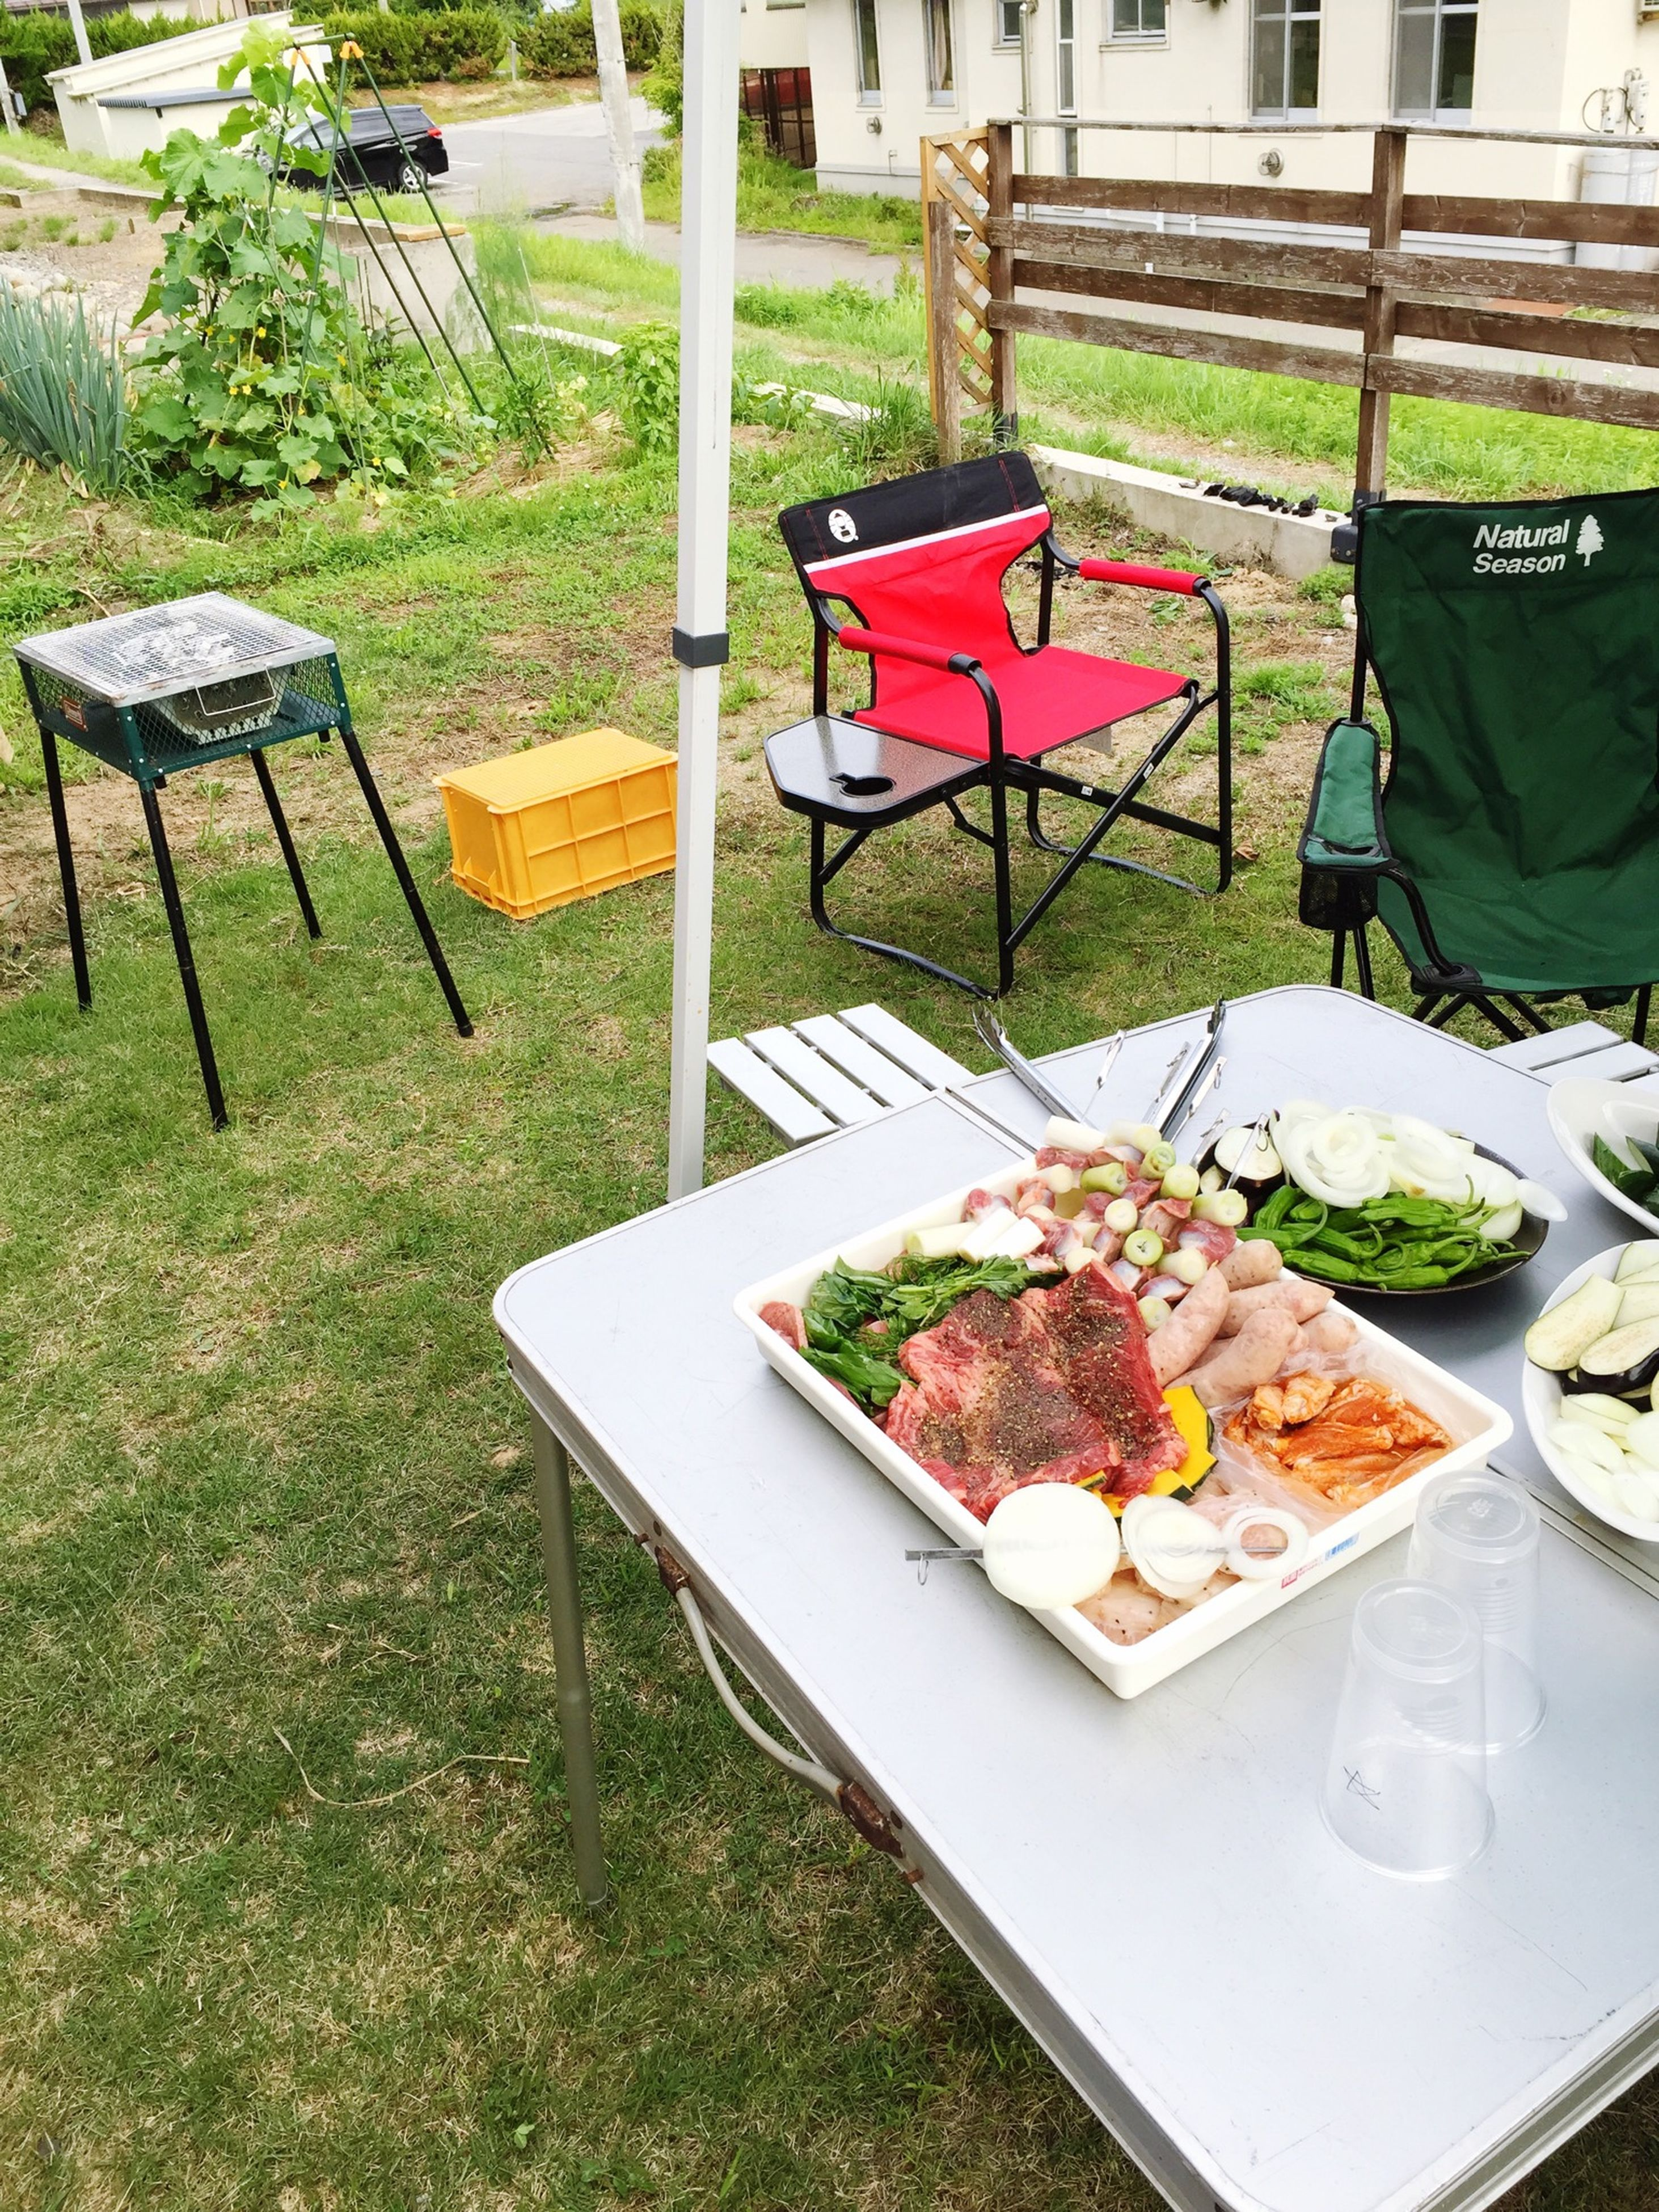 food and drink, food, freshness, grass, vegetable, healthy eating, chair, table, bench, day, absence, outdoors, no people, high angle view, ready-to-eat, leaf, green color, variation, nature, abundance